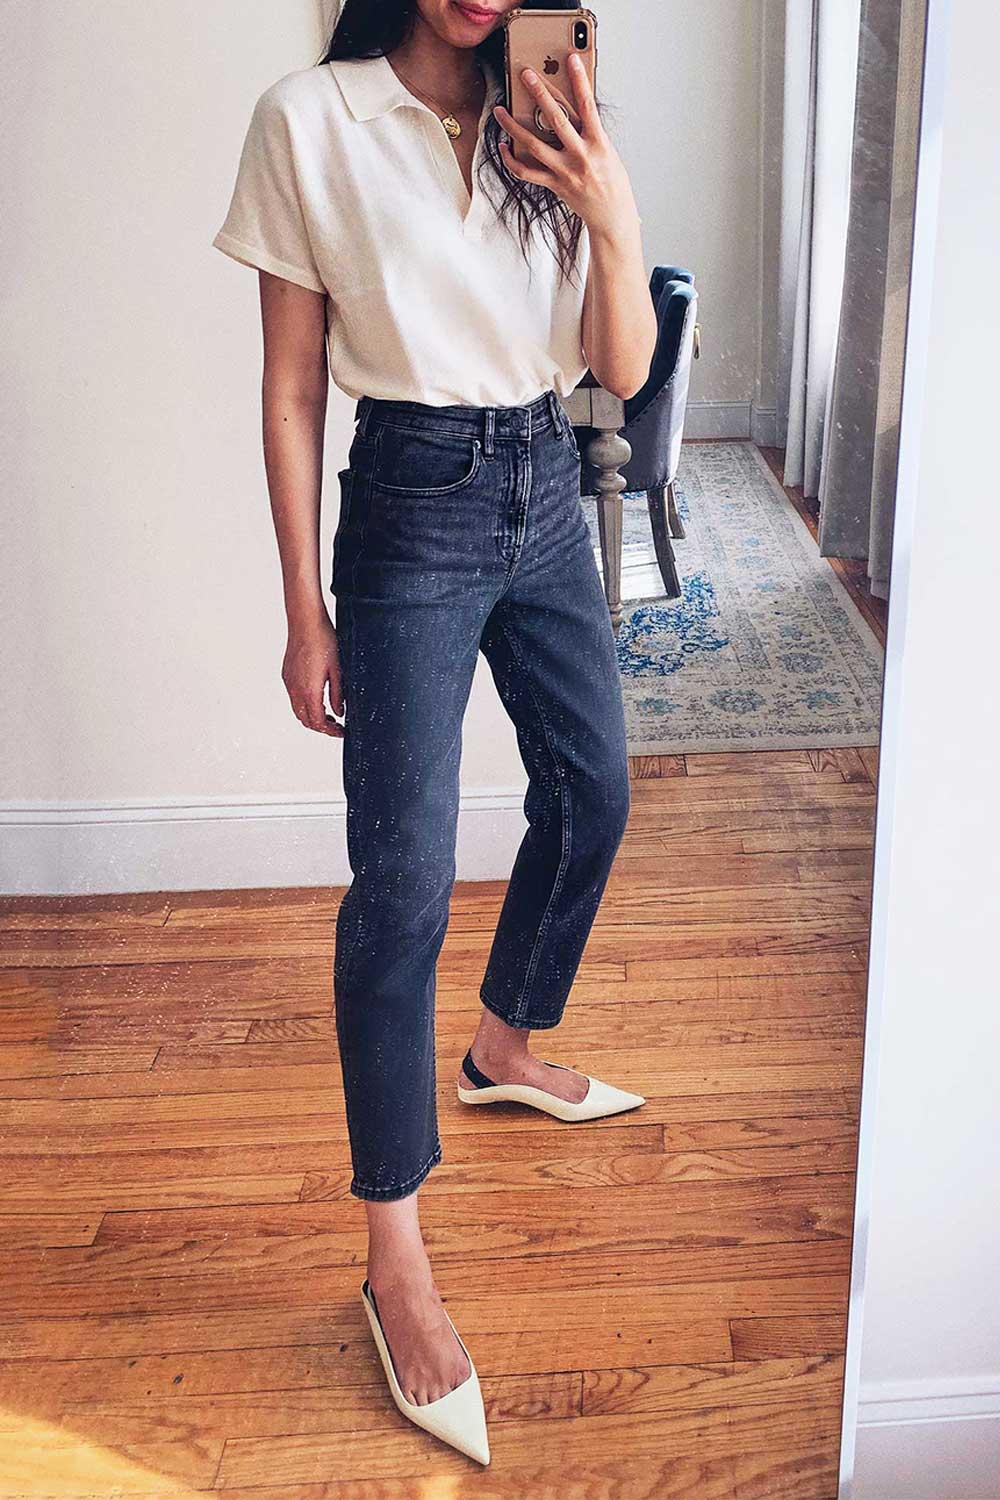 everlane-jeans-review